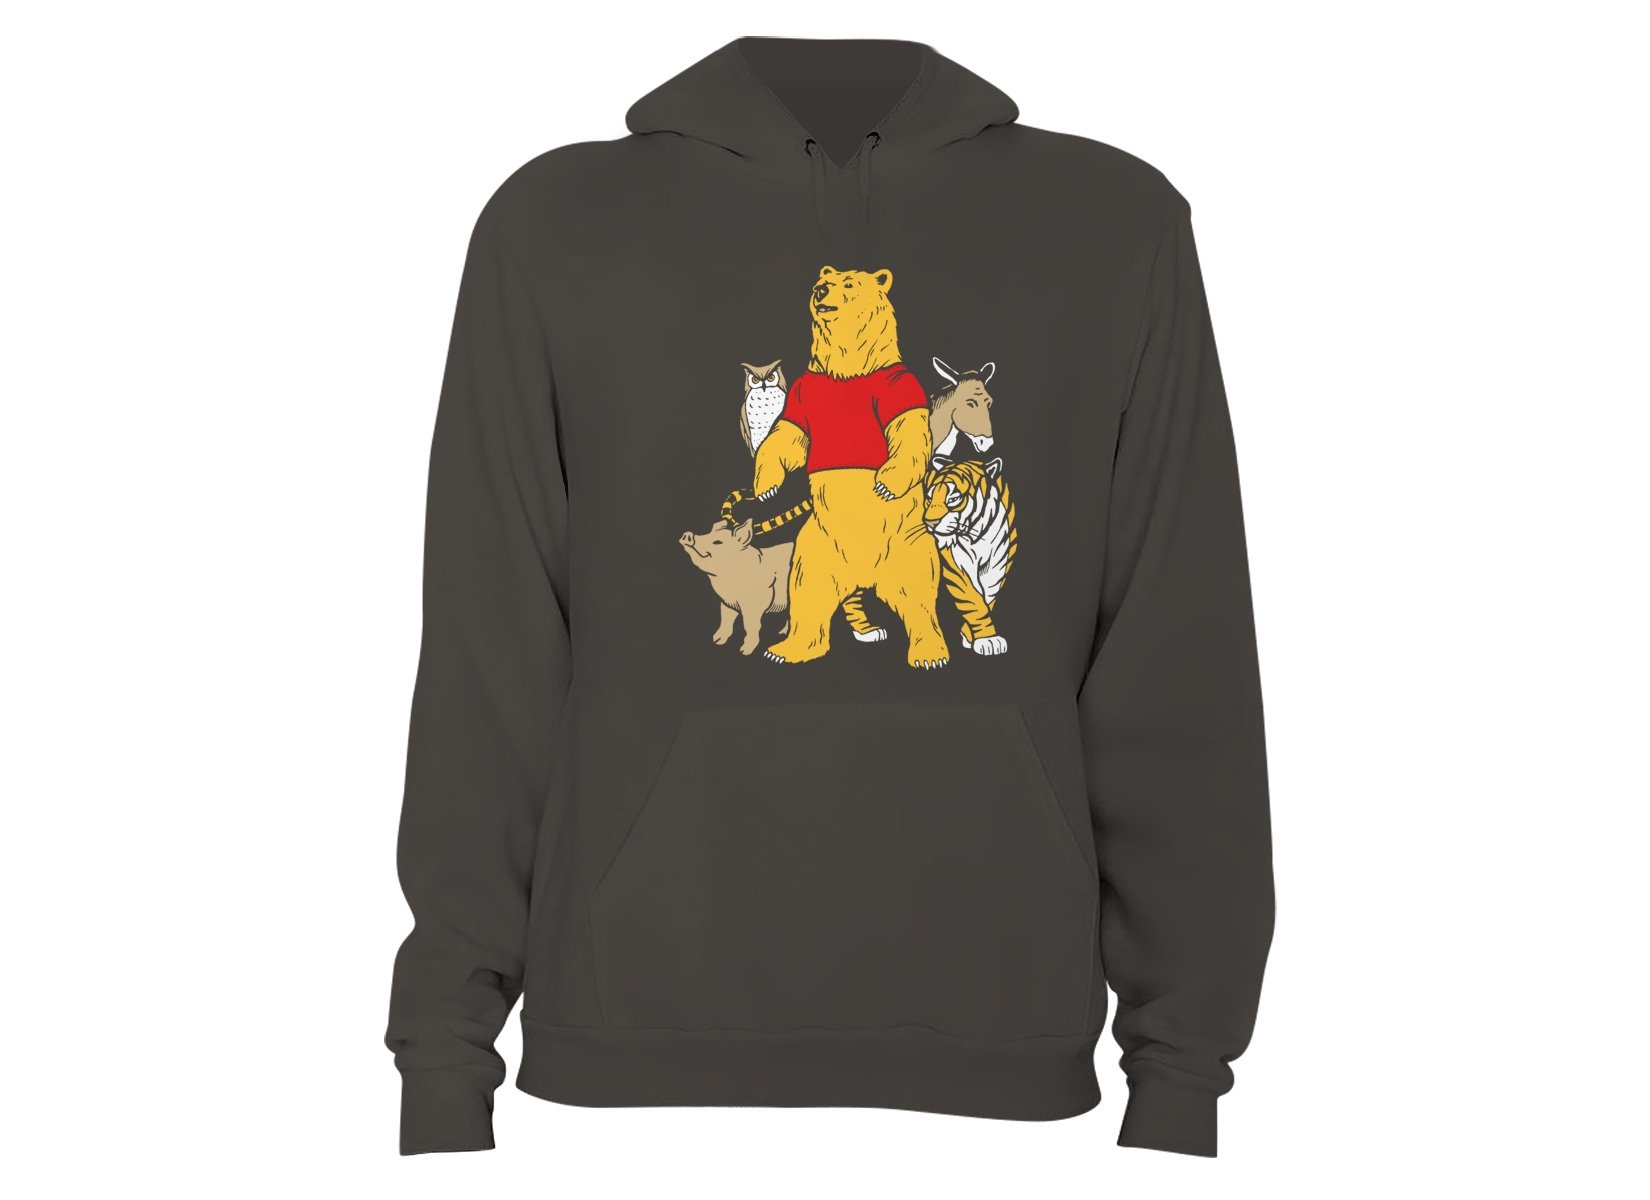 Bear And Friends on Hoodie